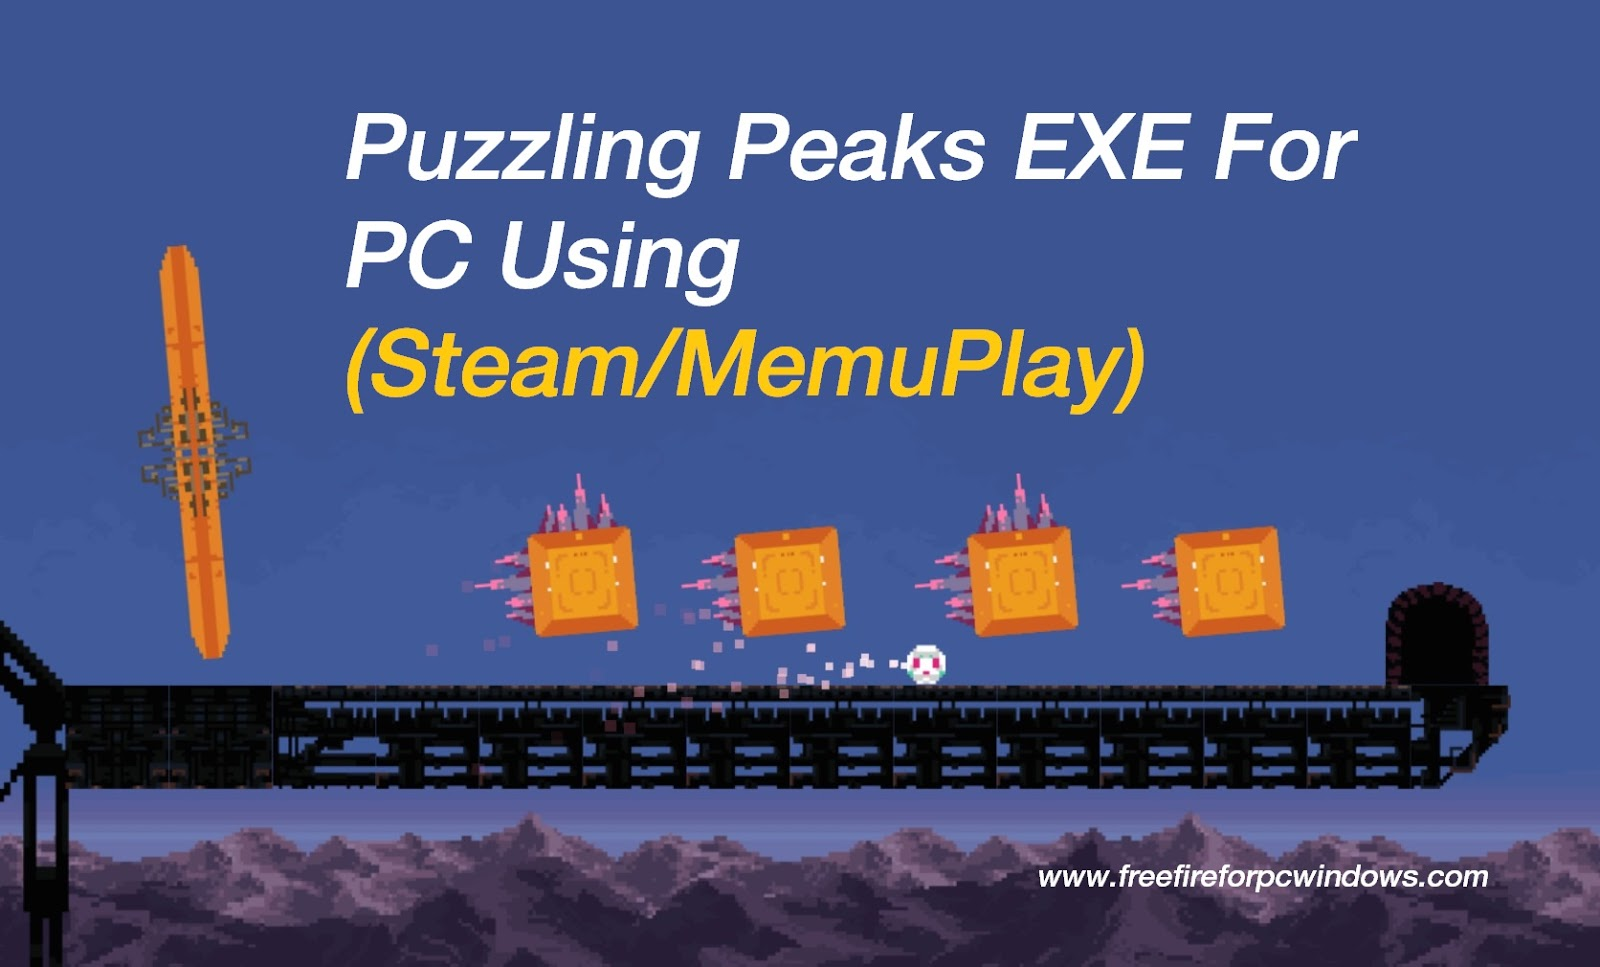 Puzzling Peaks EXE For PC